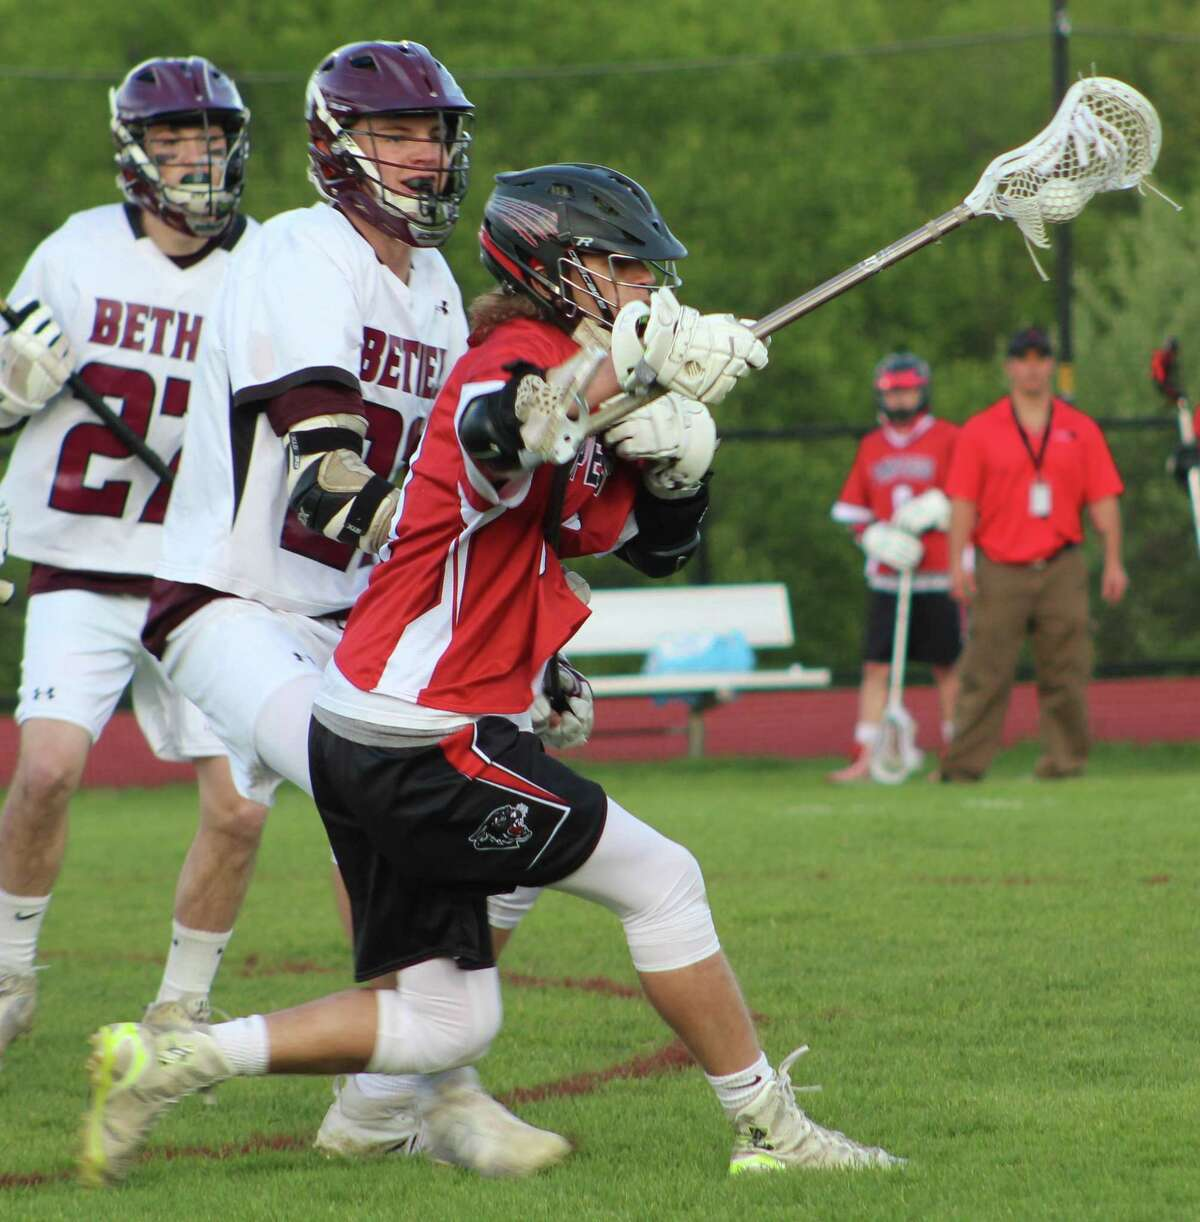 Pomperaug's Evan Cyganowski, right, looks for an opening as Bethel's Luke Newman, center, and Aiden Vizi defend during the boys lacrosse game at Bethel High School May 12, 2017.